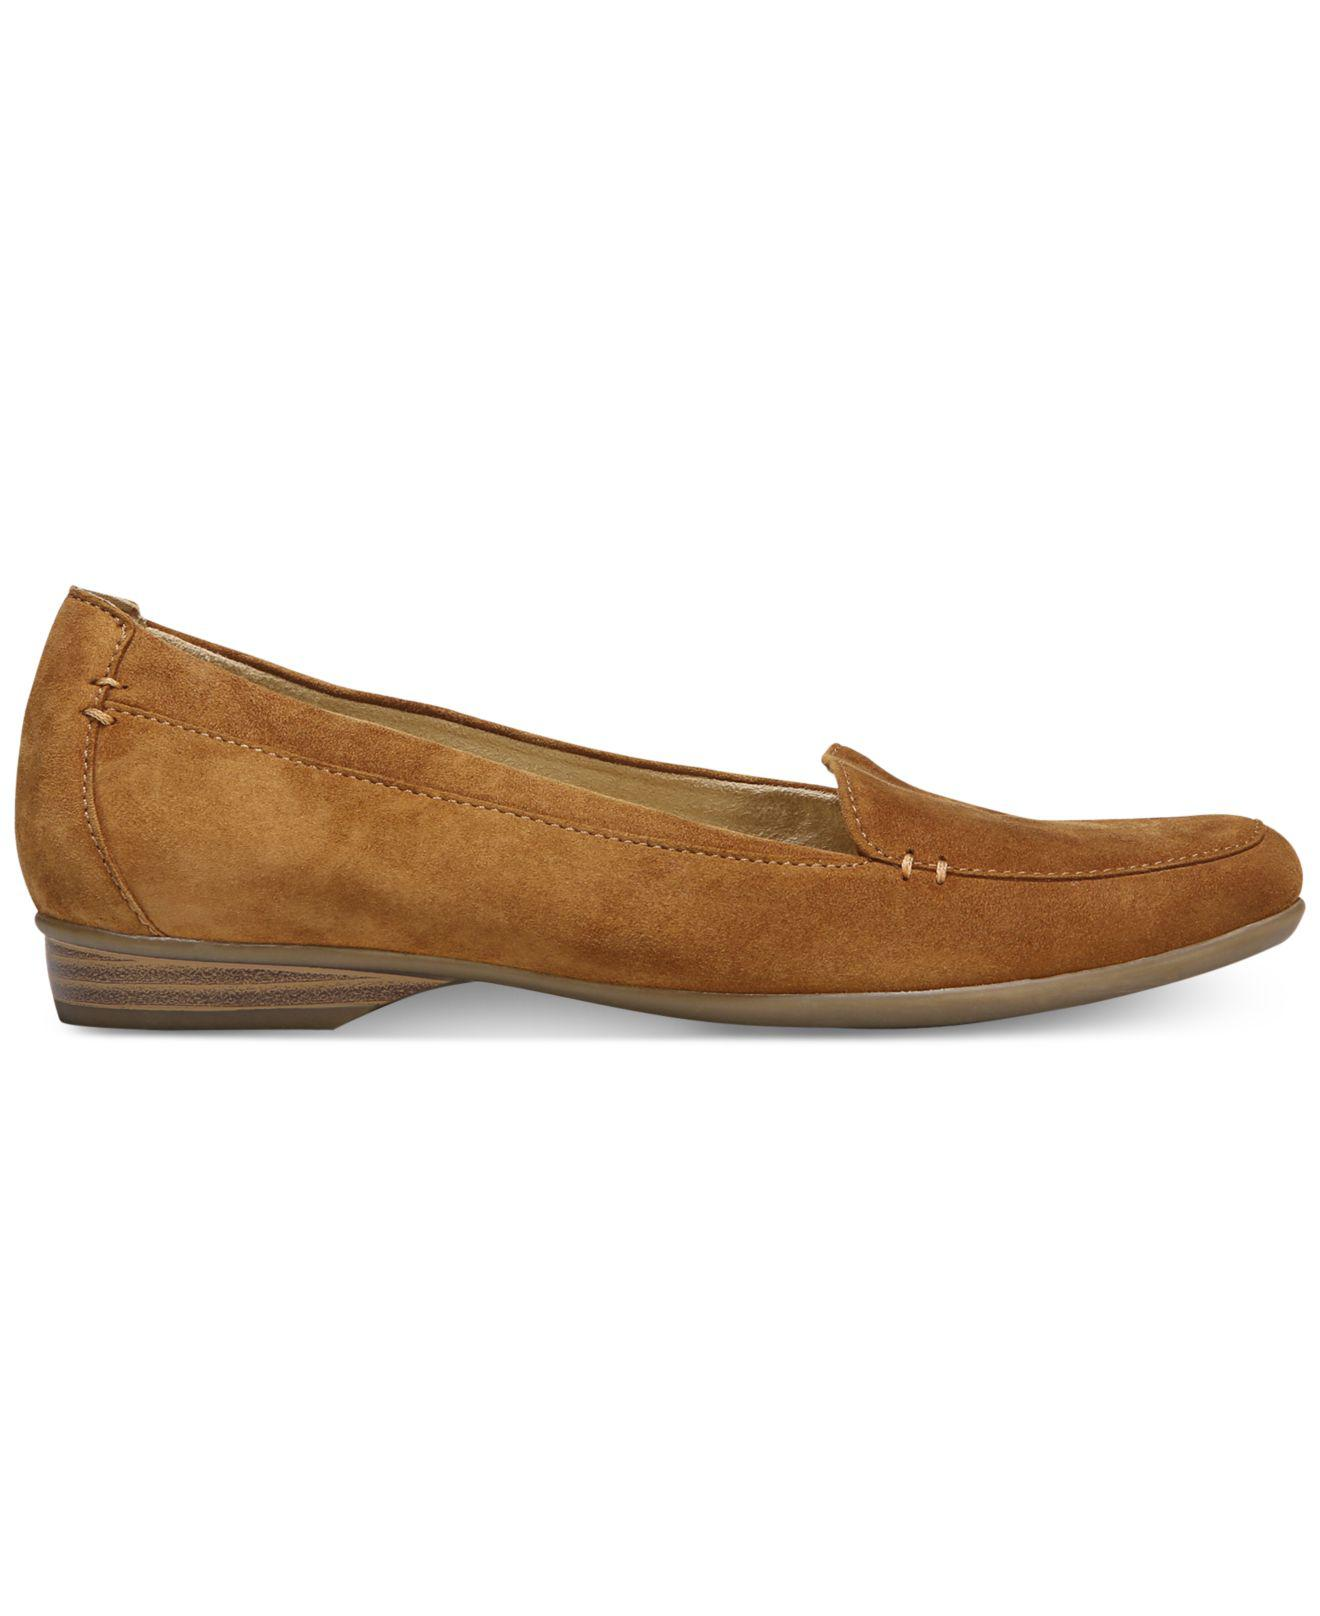 0eacd3657cd2c4 Lyst - Naturalizer Saban Flats in Brown - Save 51%